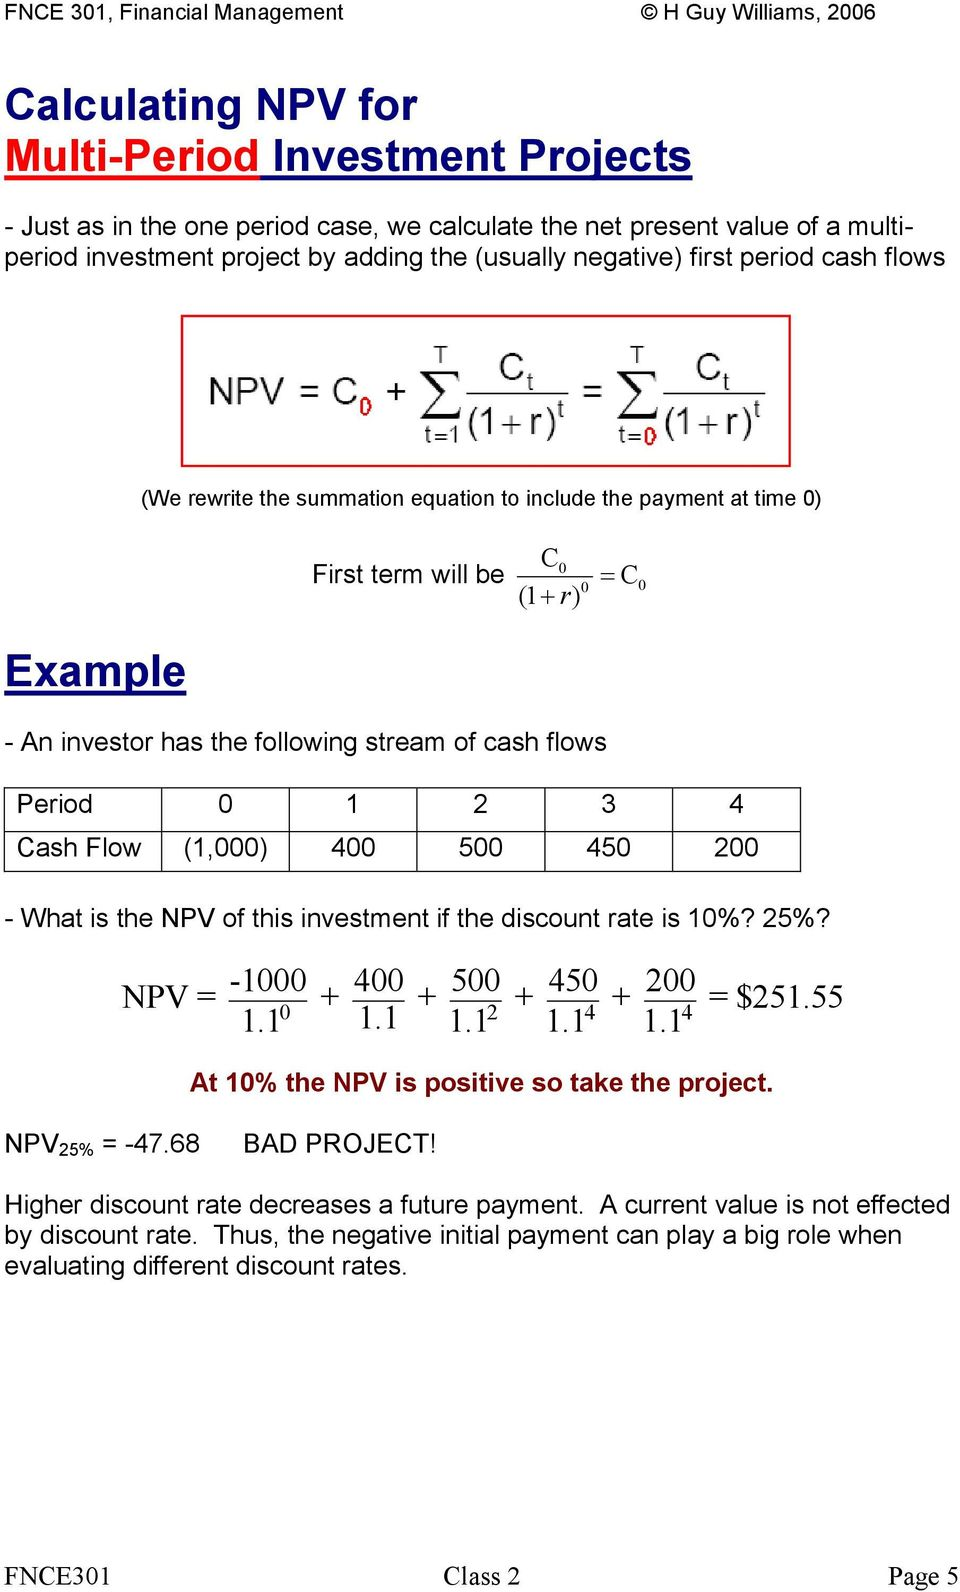 Flow (1,000) 400 500 450 200 - What is the NPV of this investment if the discount rate is 10%? 25%? -1000 400 500 450 200 NPV = + + + + = $251.55 0 1.1 2 4 4 1.1 1.